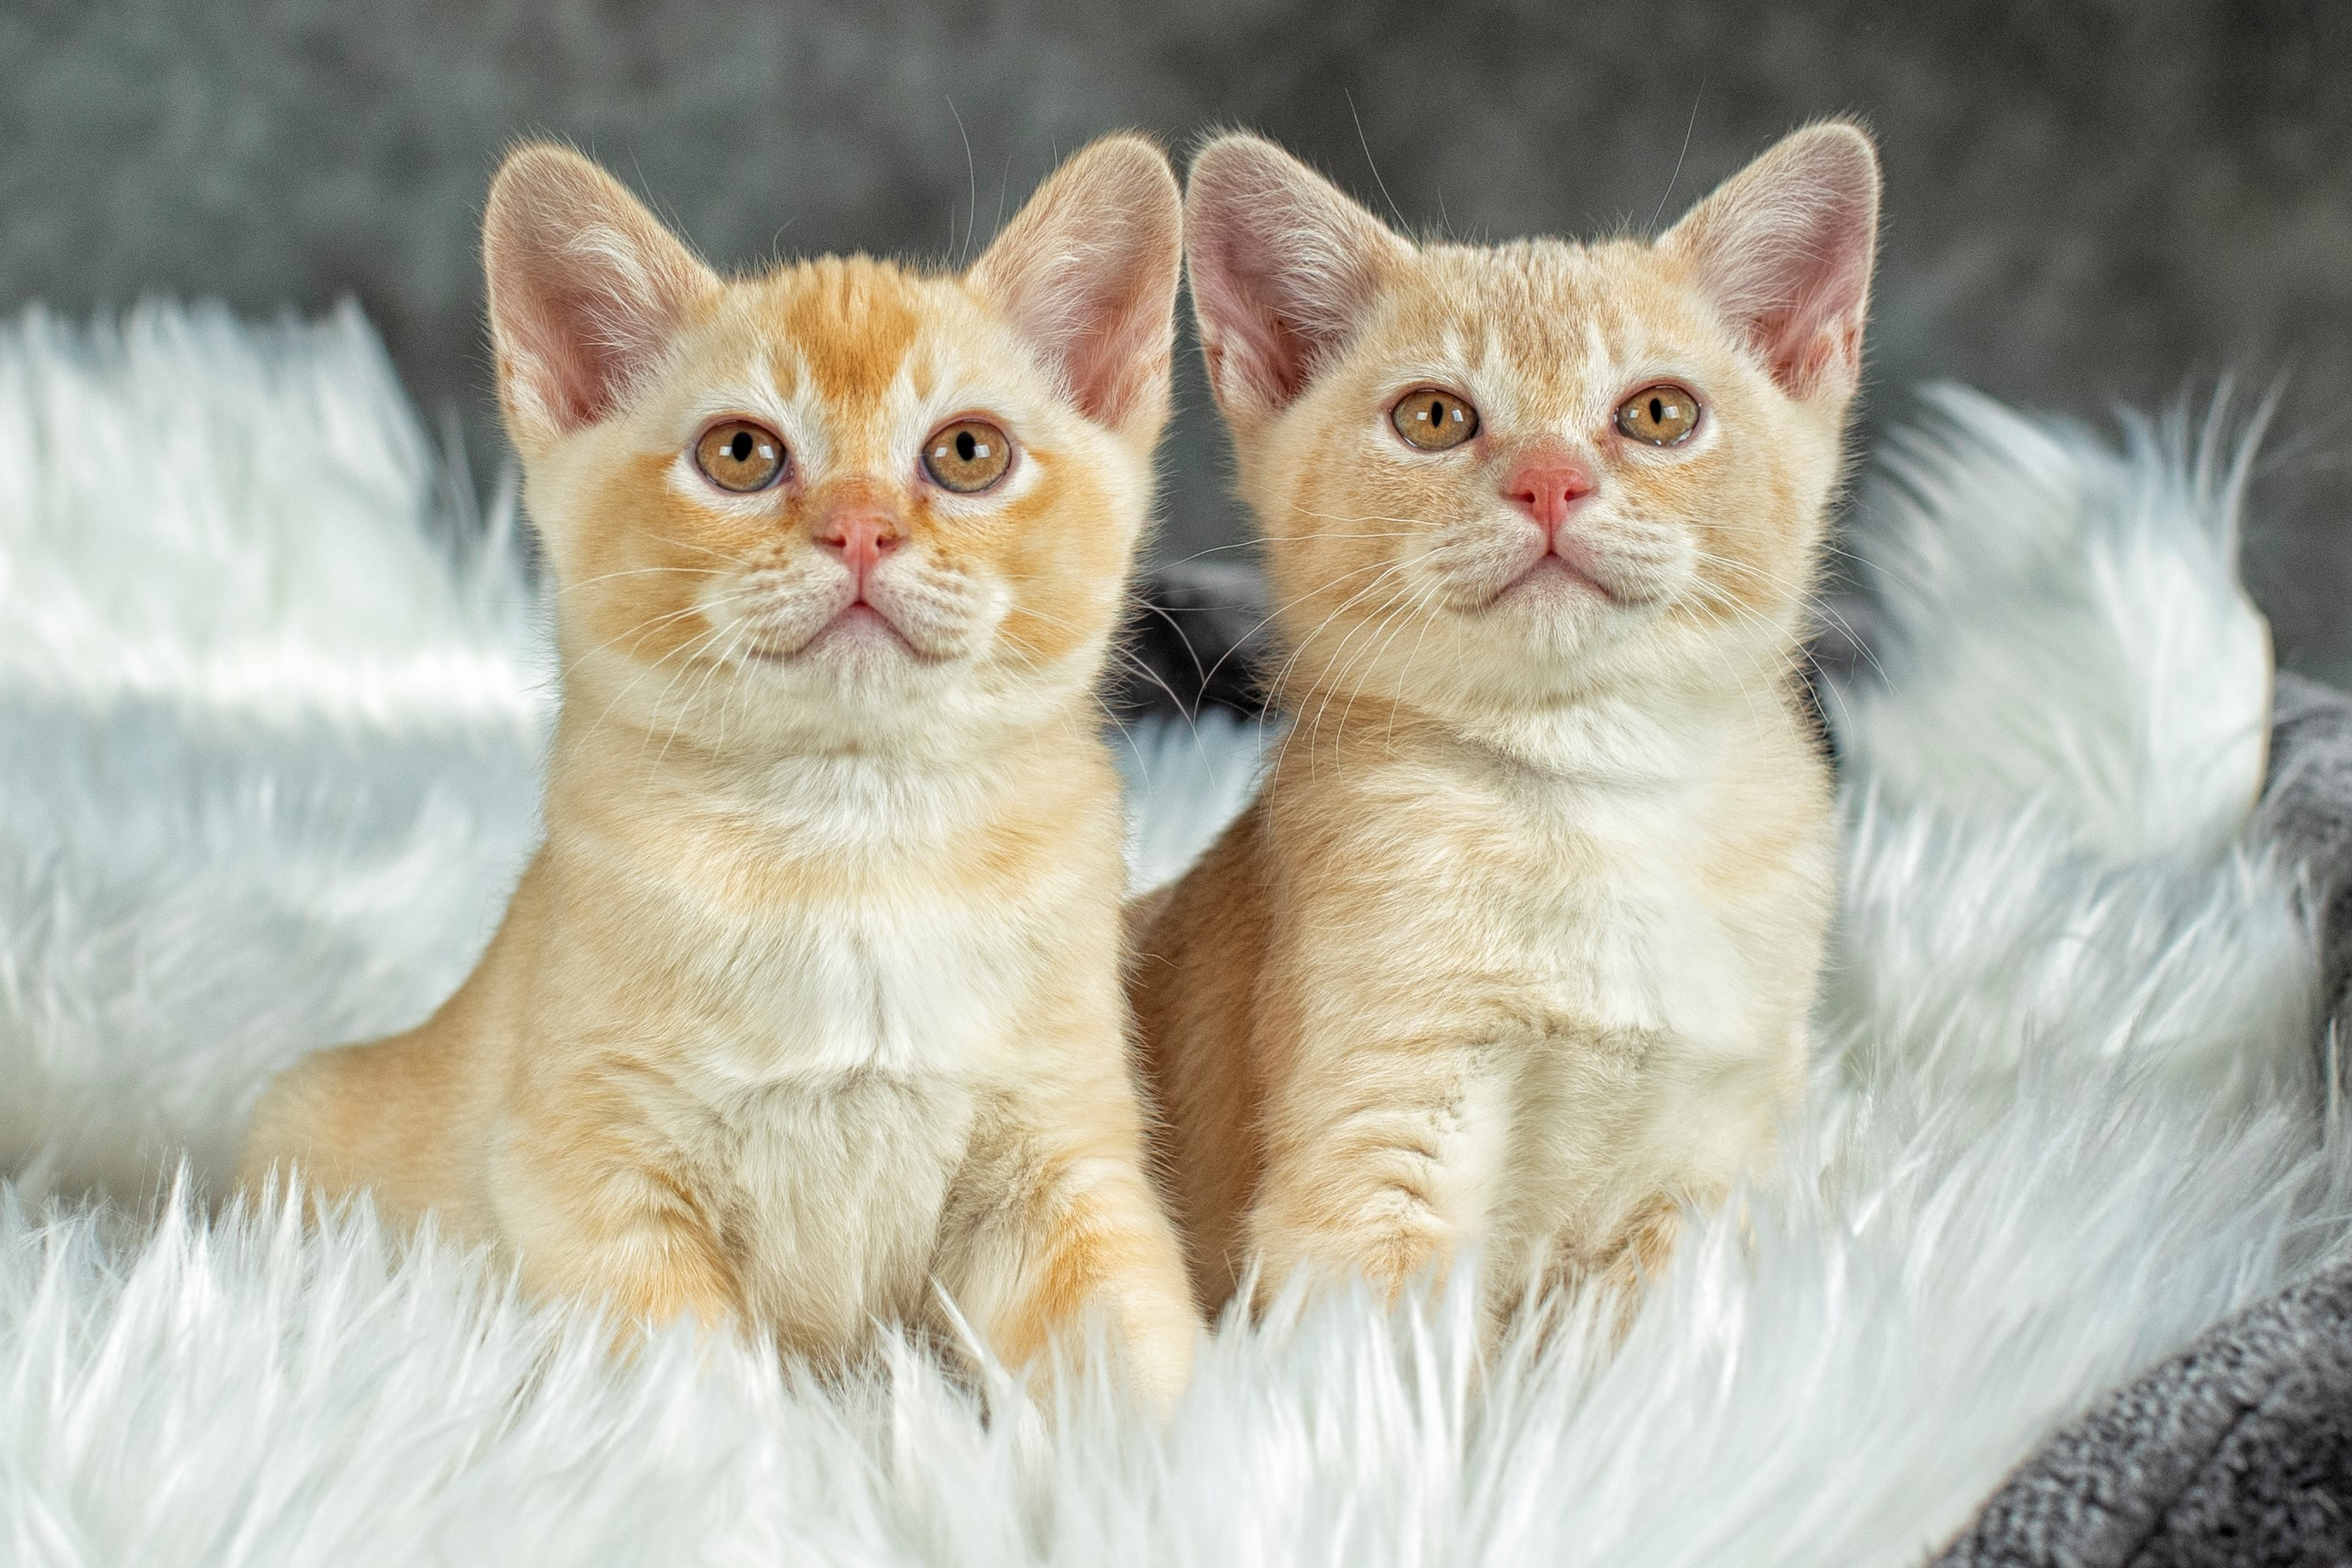 Red and Cream Burmese kittens gallery image